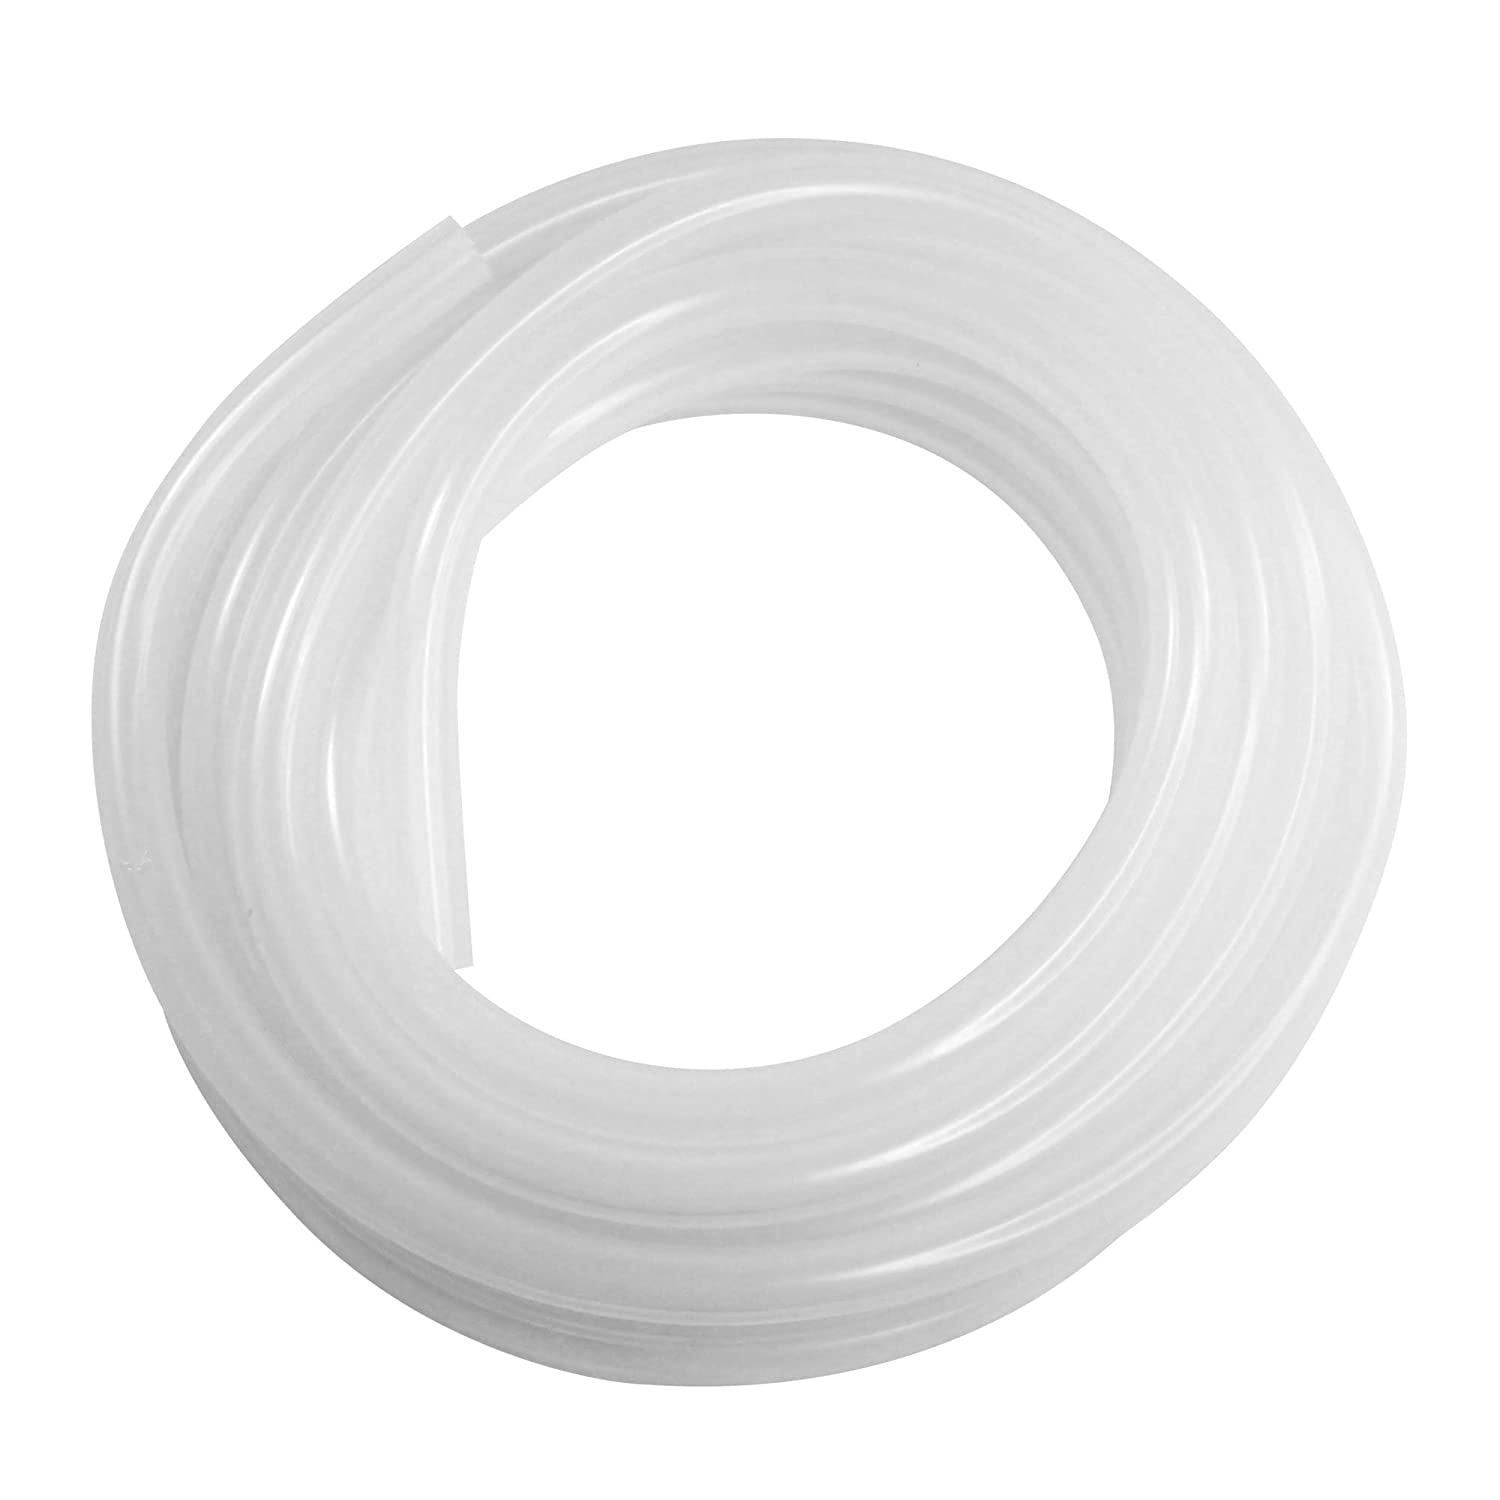 "Midwest Homebrewing and Winemaking Supplies PRECUT 1/2"" ID Silicone Tubing - 10 ft."